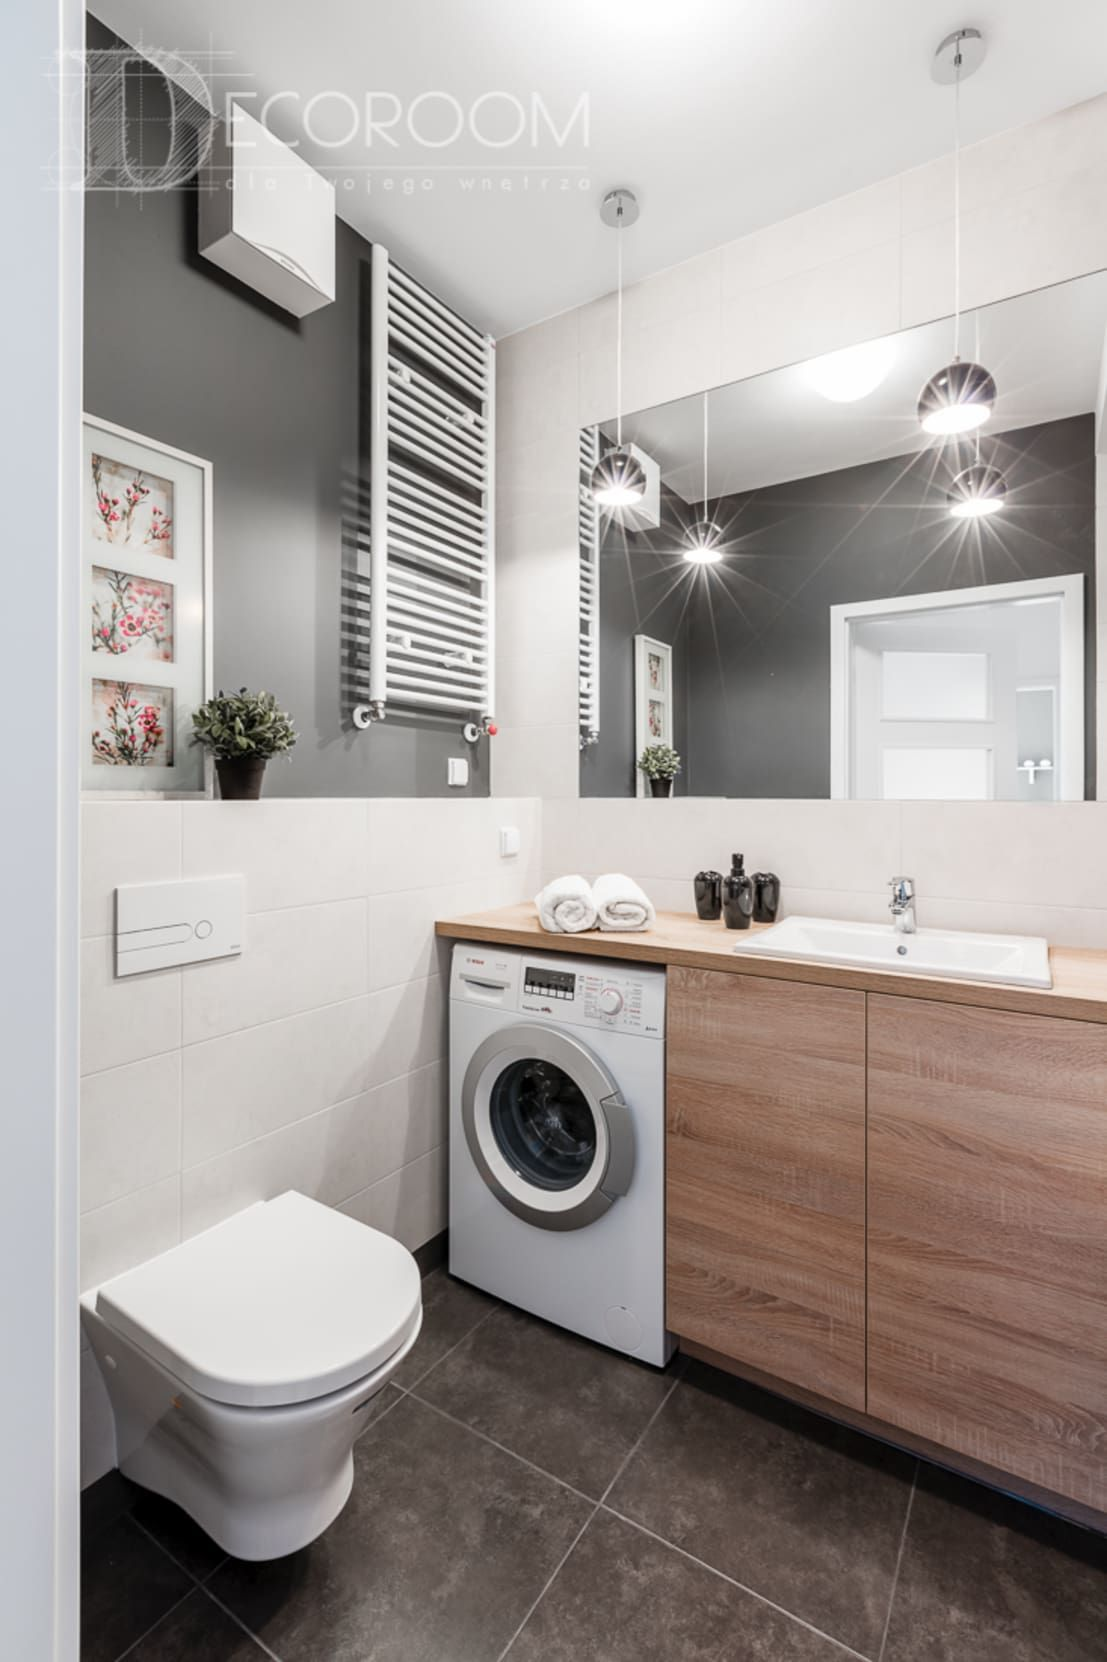 13 laundry ideas that you can easily copy for your dream home ...